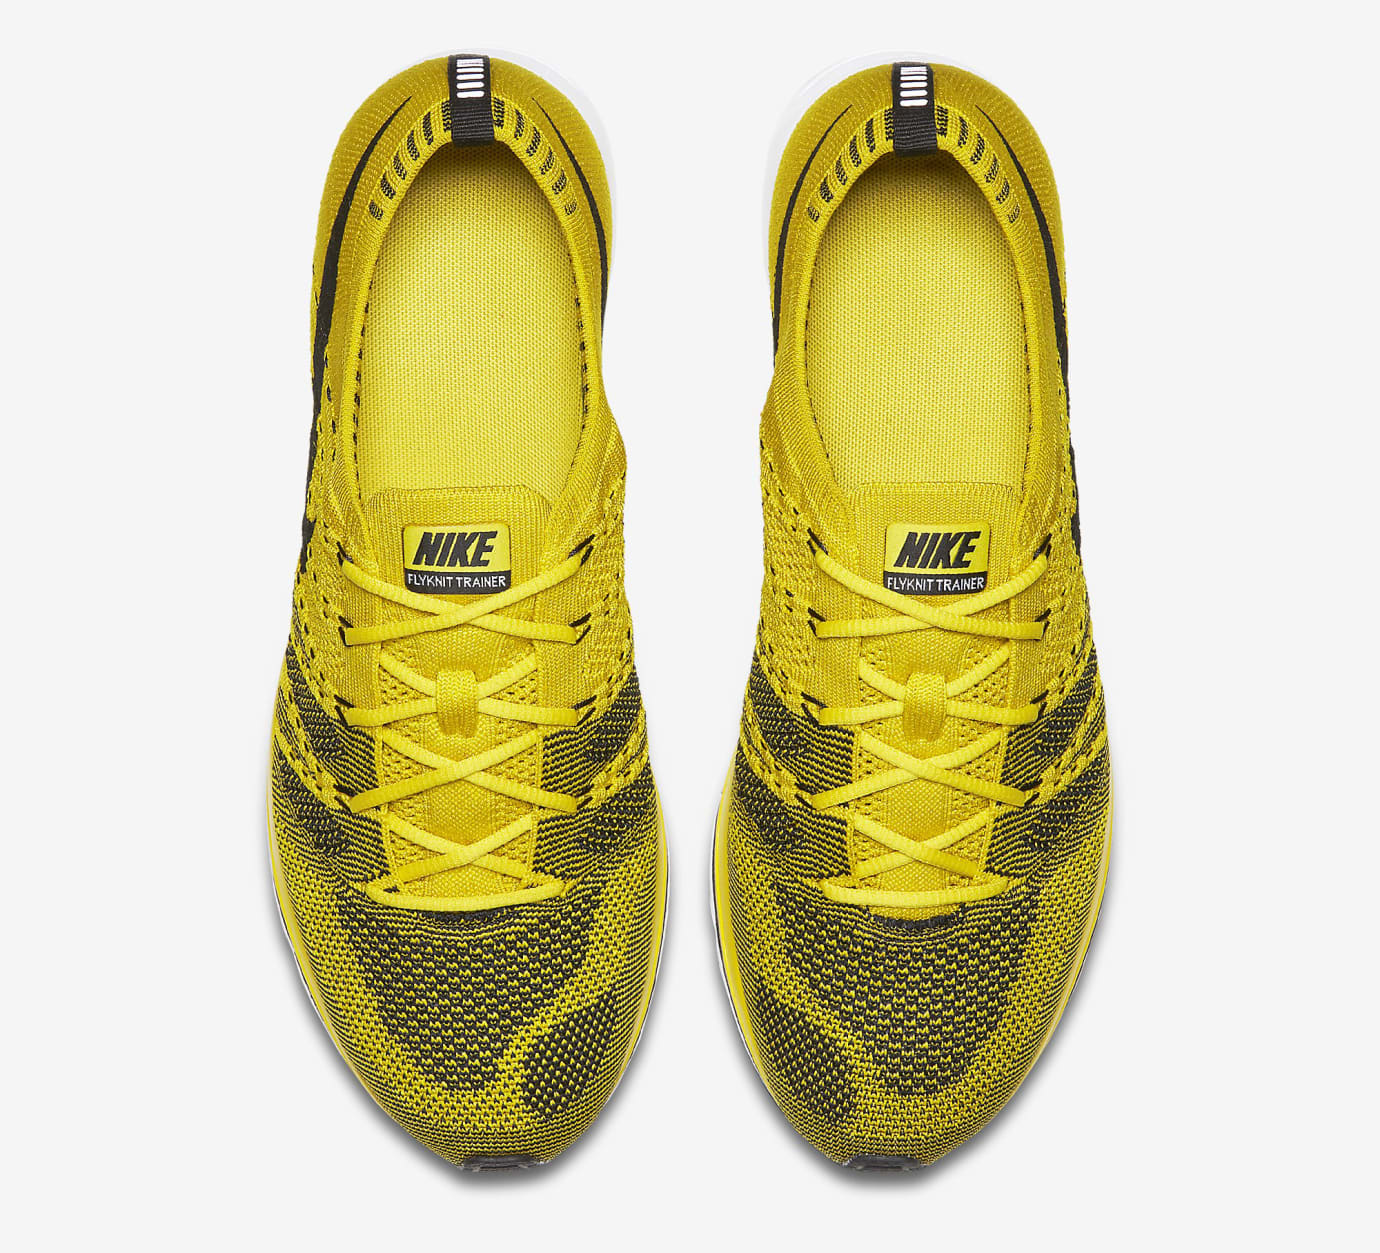 Nike Flyknit Trainer Citron ah8396-700 Top